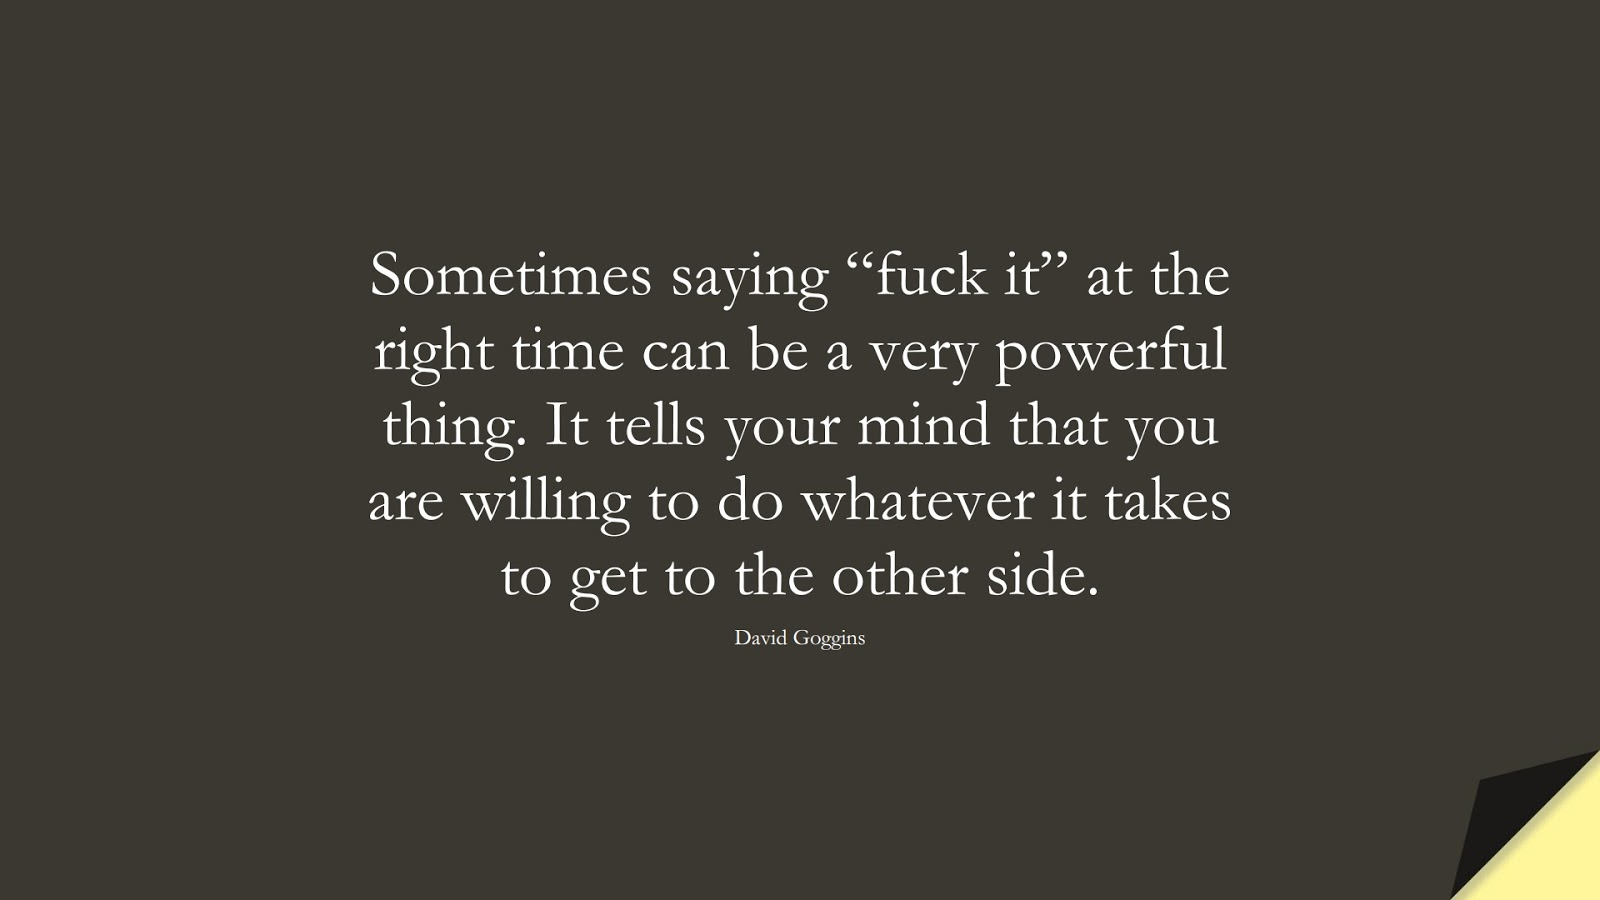 """Sometimes saying """"fuck it"""" at the right time can be a very powerful thing. It tells your mind that you are willing to do whatever it takes to get to the other side. (David Goggins);  #StoicQuotes"""